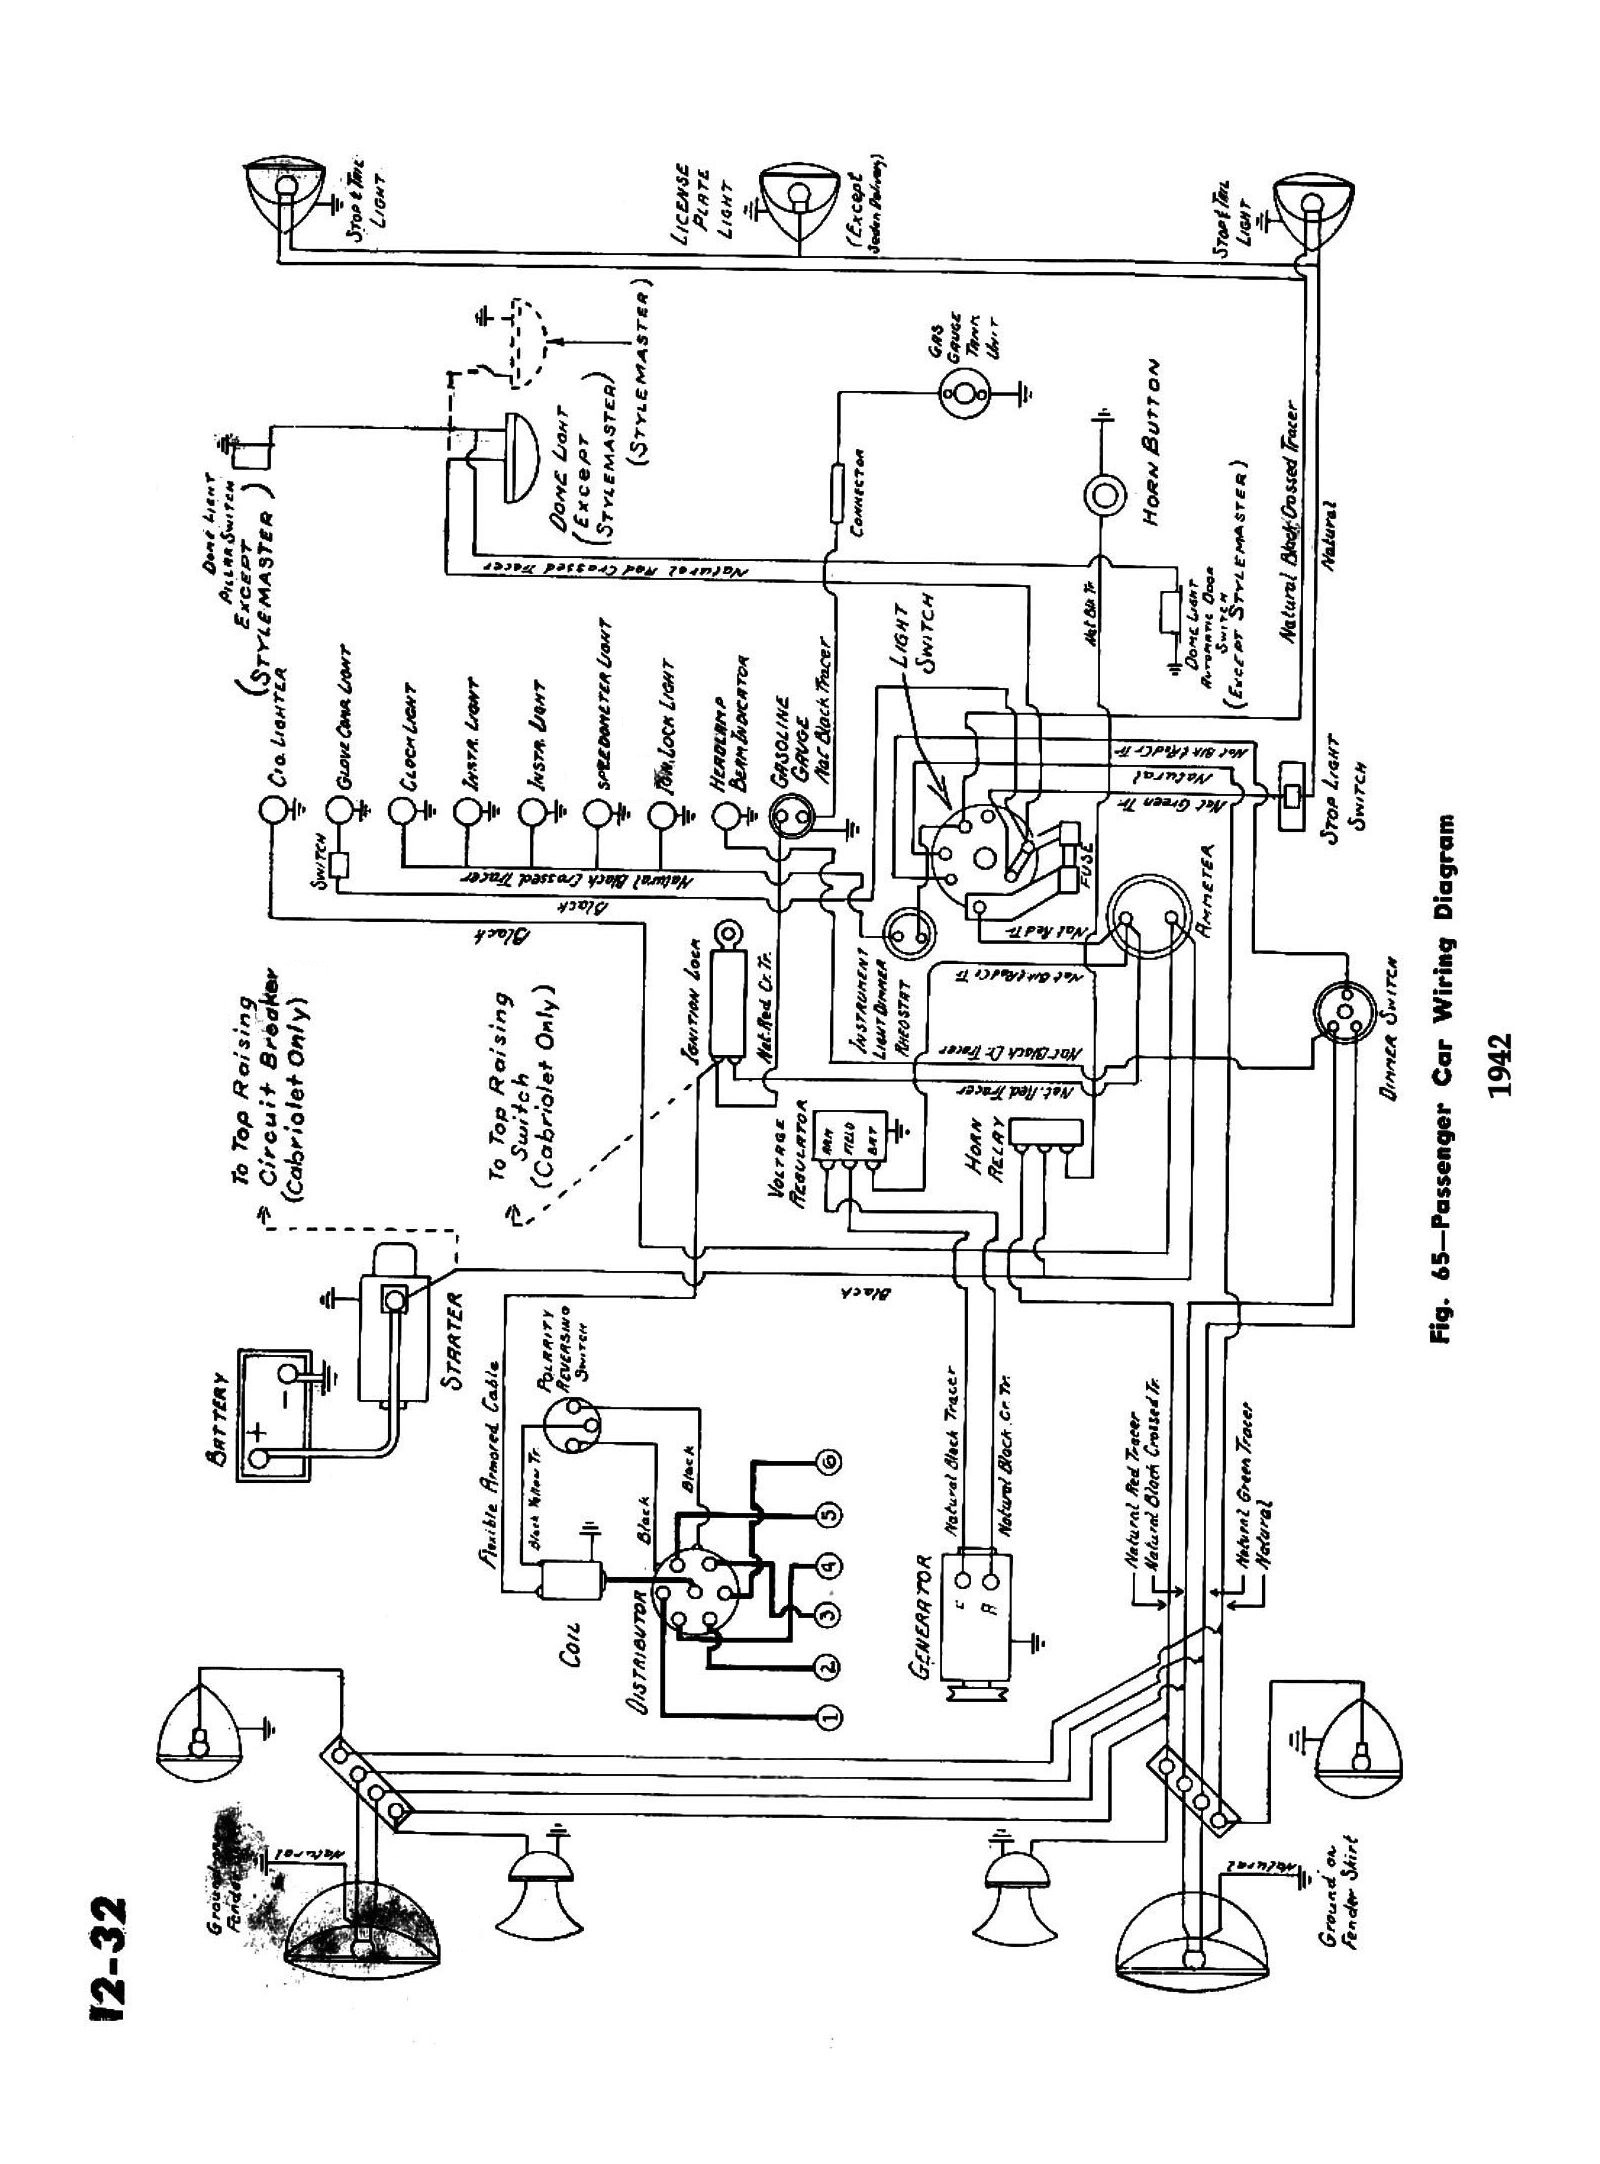 Chevy Wiring Diagrams Radio Harness Diagram As Well Dodge Ram 1942 Passenger Car